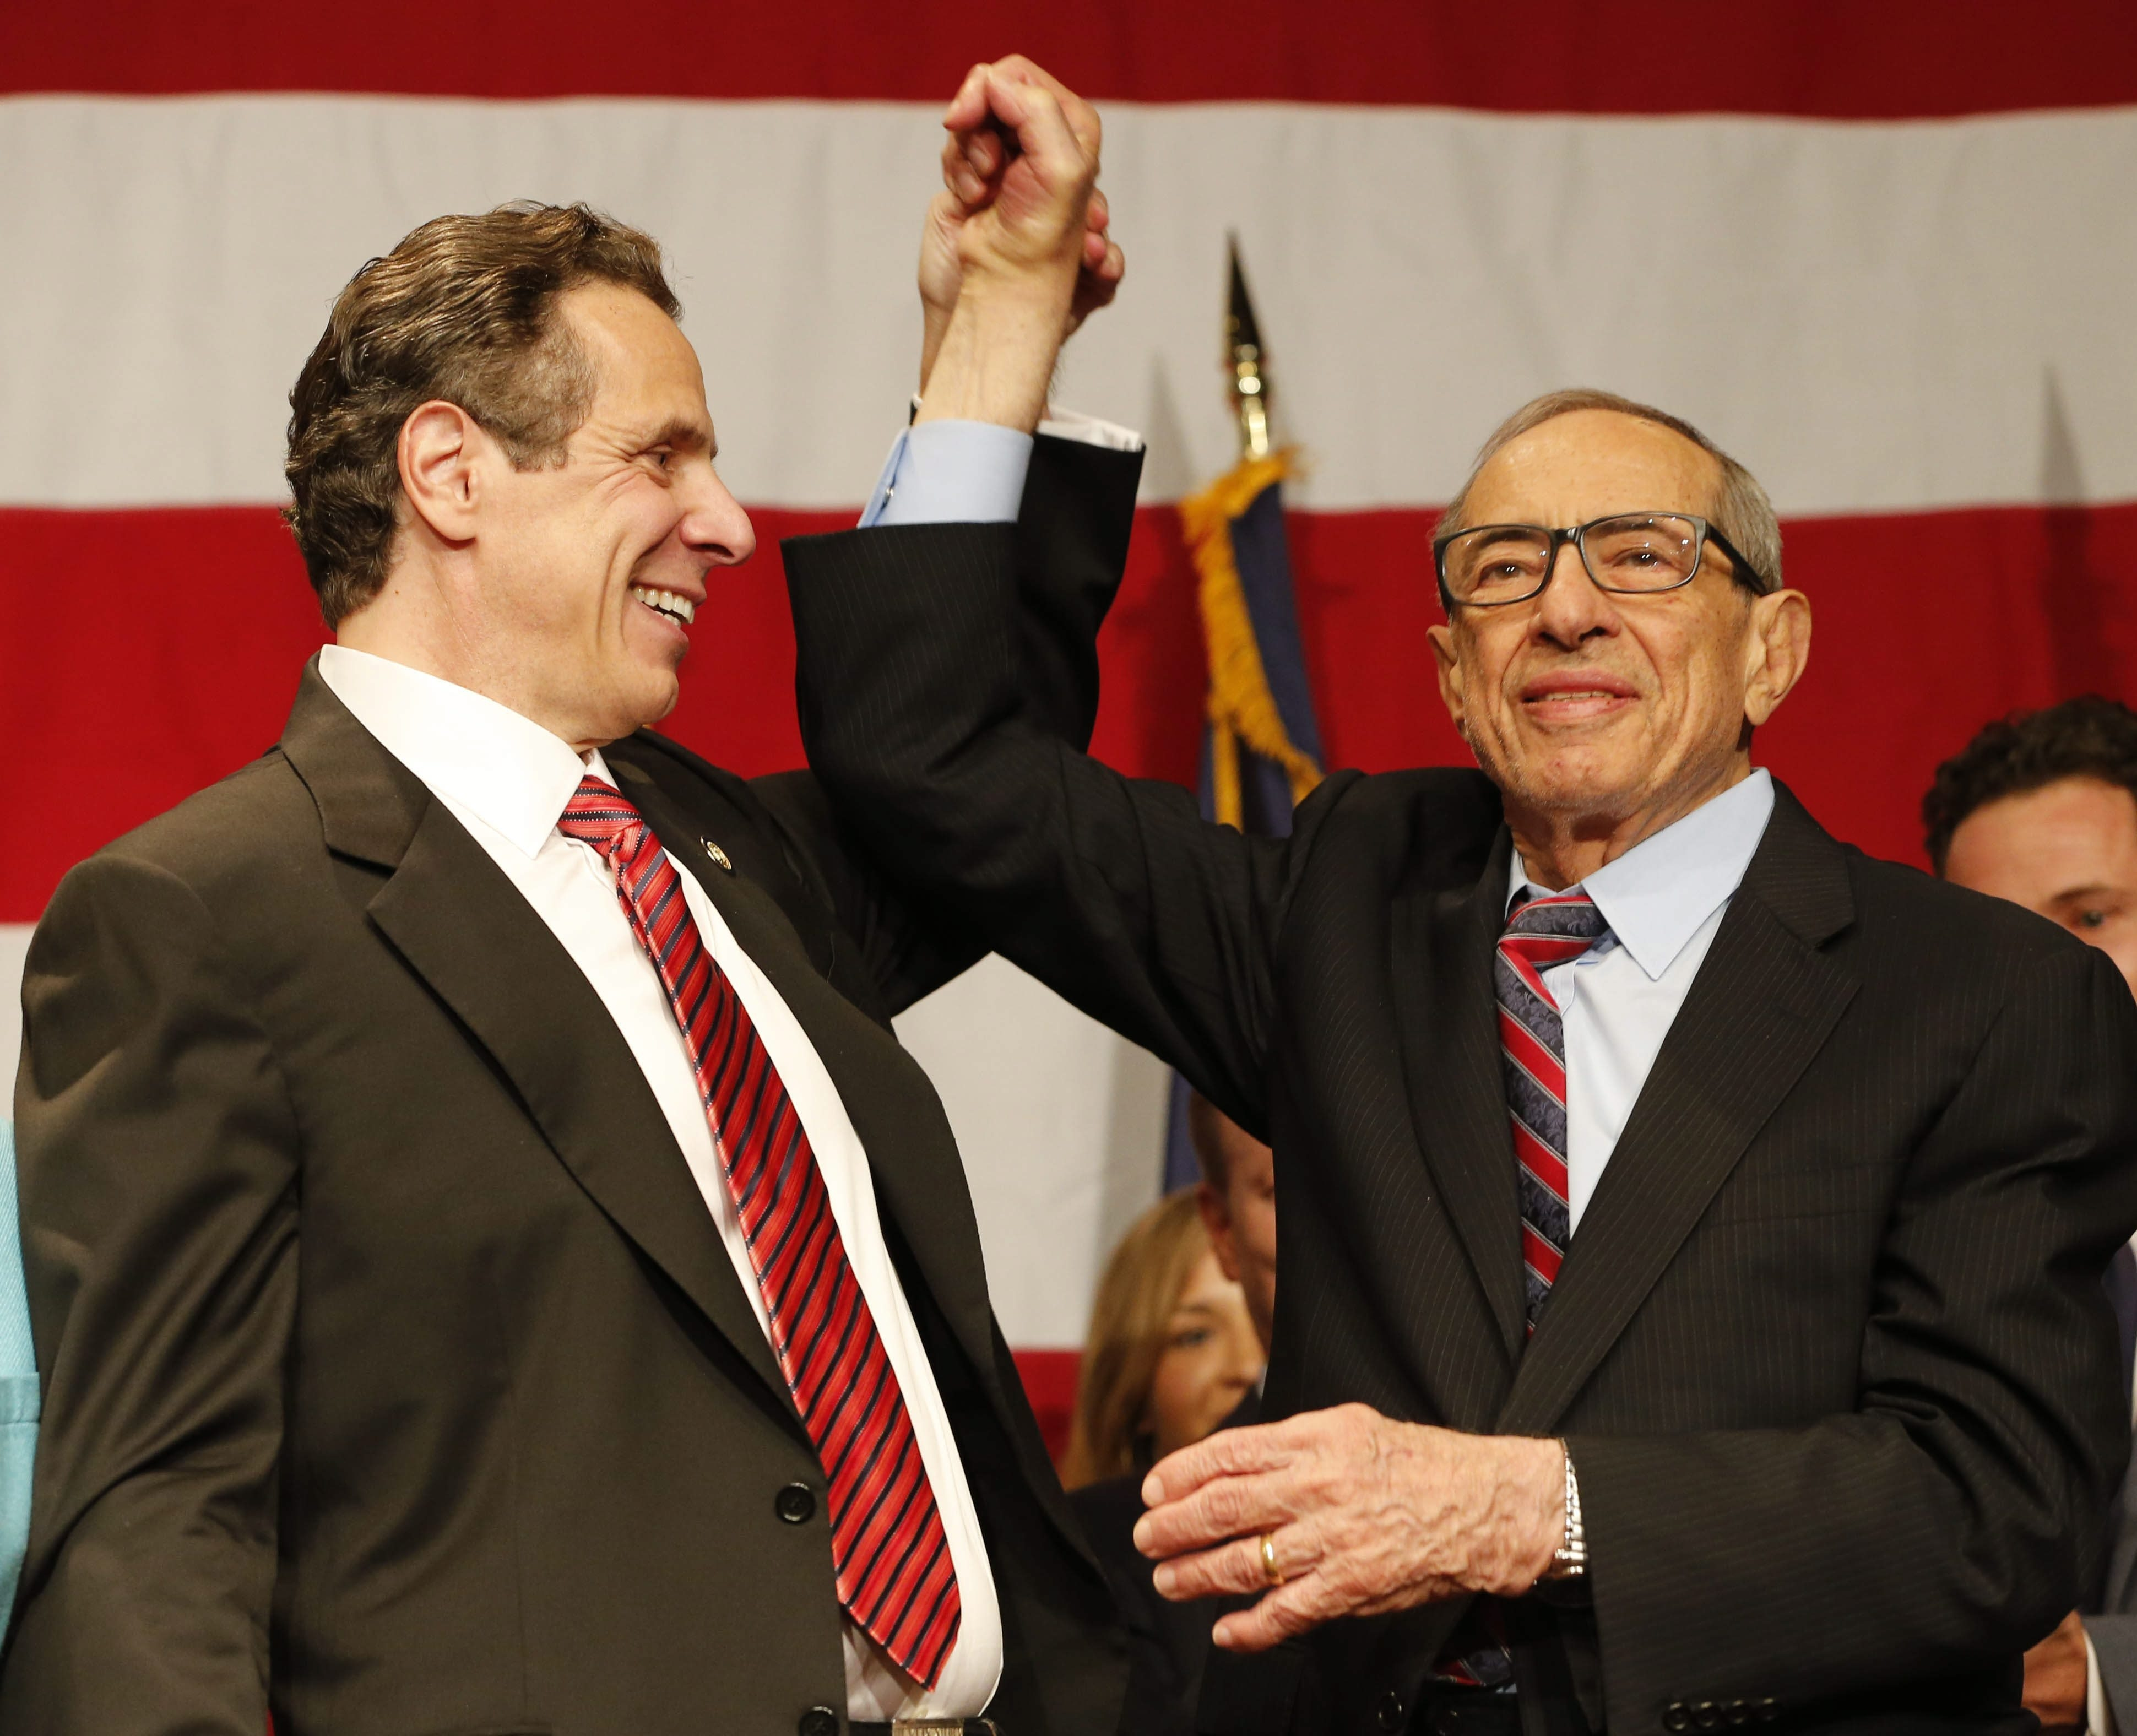 Gov. Andrew Cuomo and his father, former Gov. Mario Cuomo, celebrate Andrew's re-election at the Sheraton New York Times Square in New York City, Tuesday, Nov. 4, 2014.